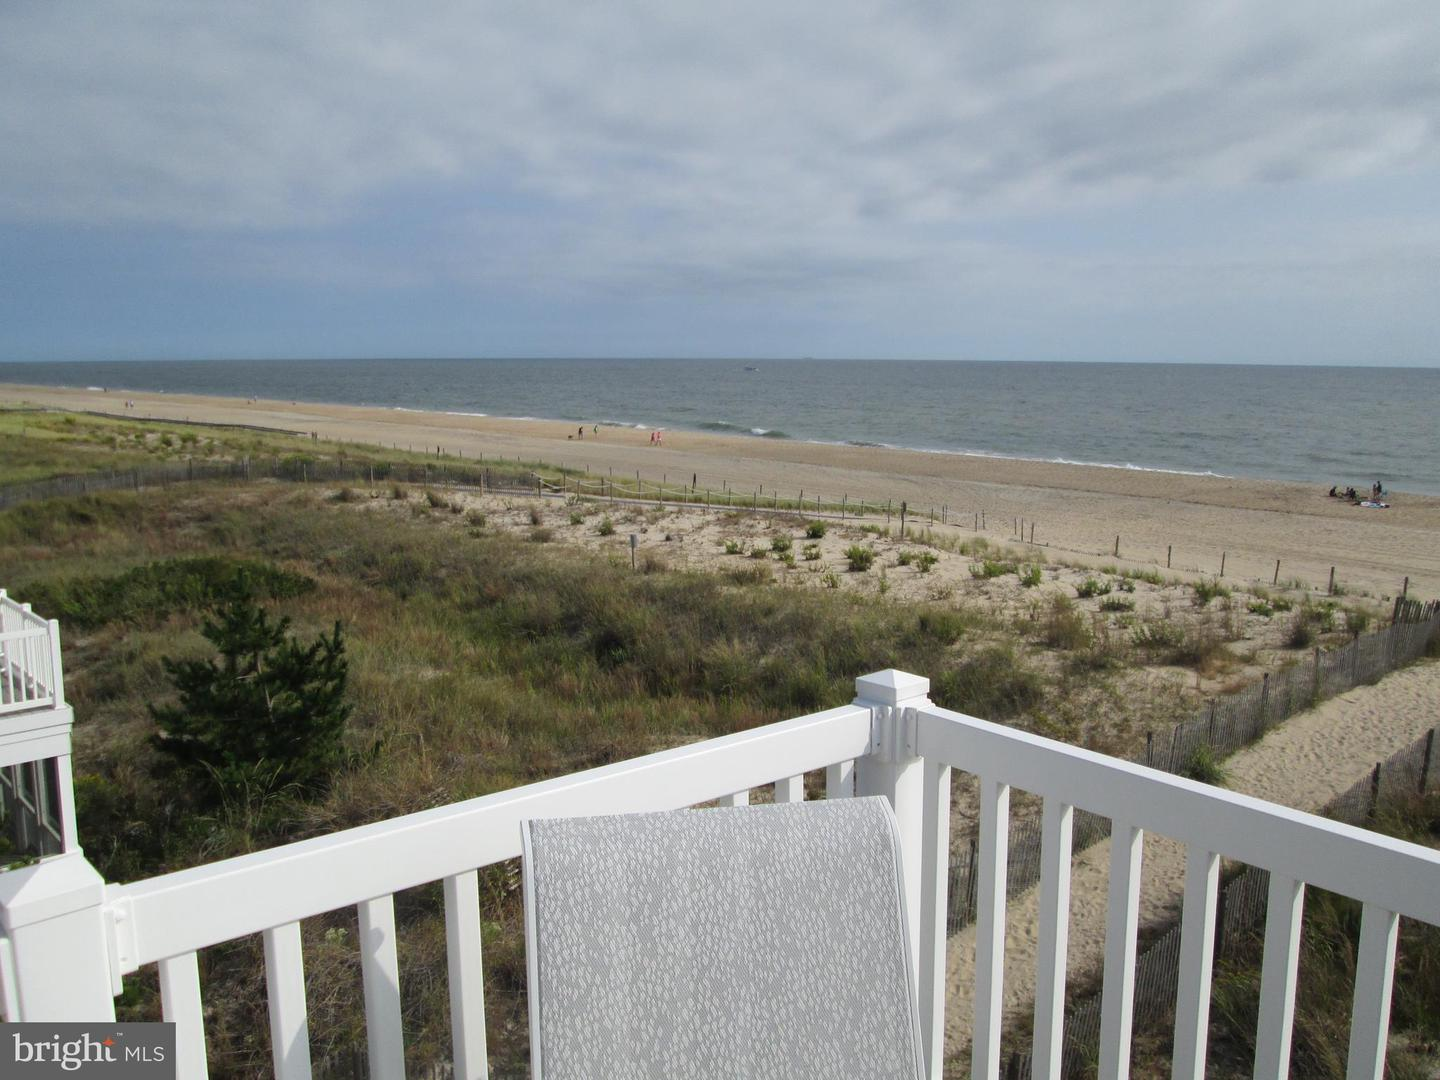 DESU148906-302085632365-2019-09-30-09-08-56 38799 Bunting Ave #1 | Fenwick Island, DE Real Estate For Sale | MLS# Desu148906  - Jack Lingo REALTOR